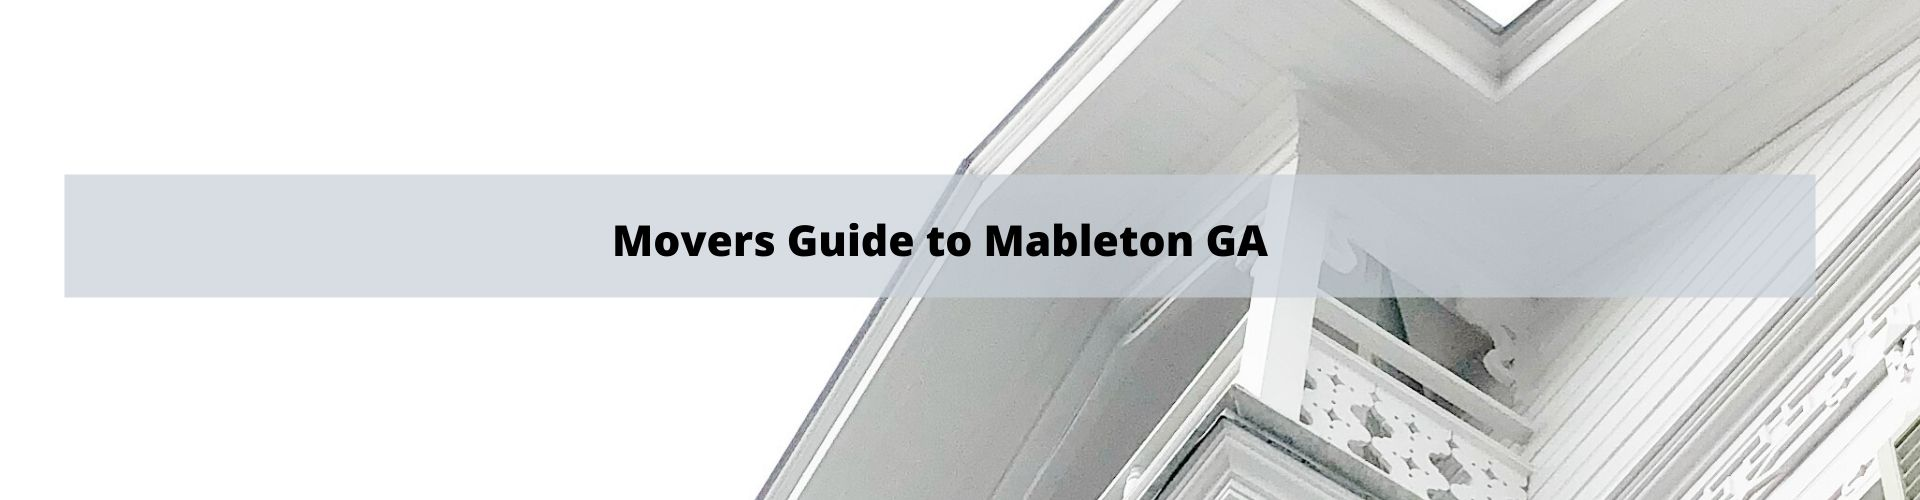 Mover's Guide to Mableton GA